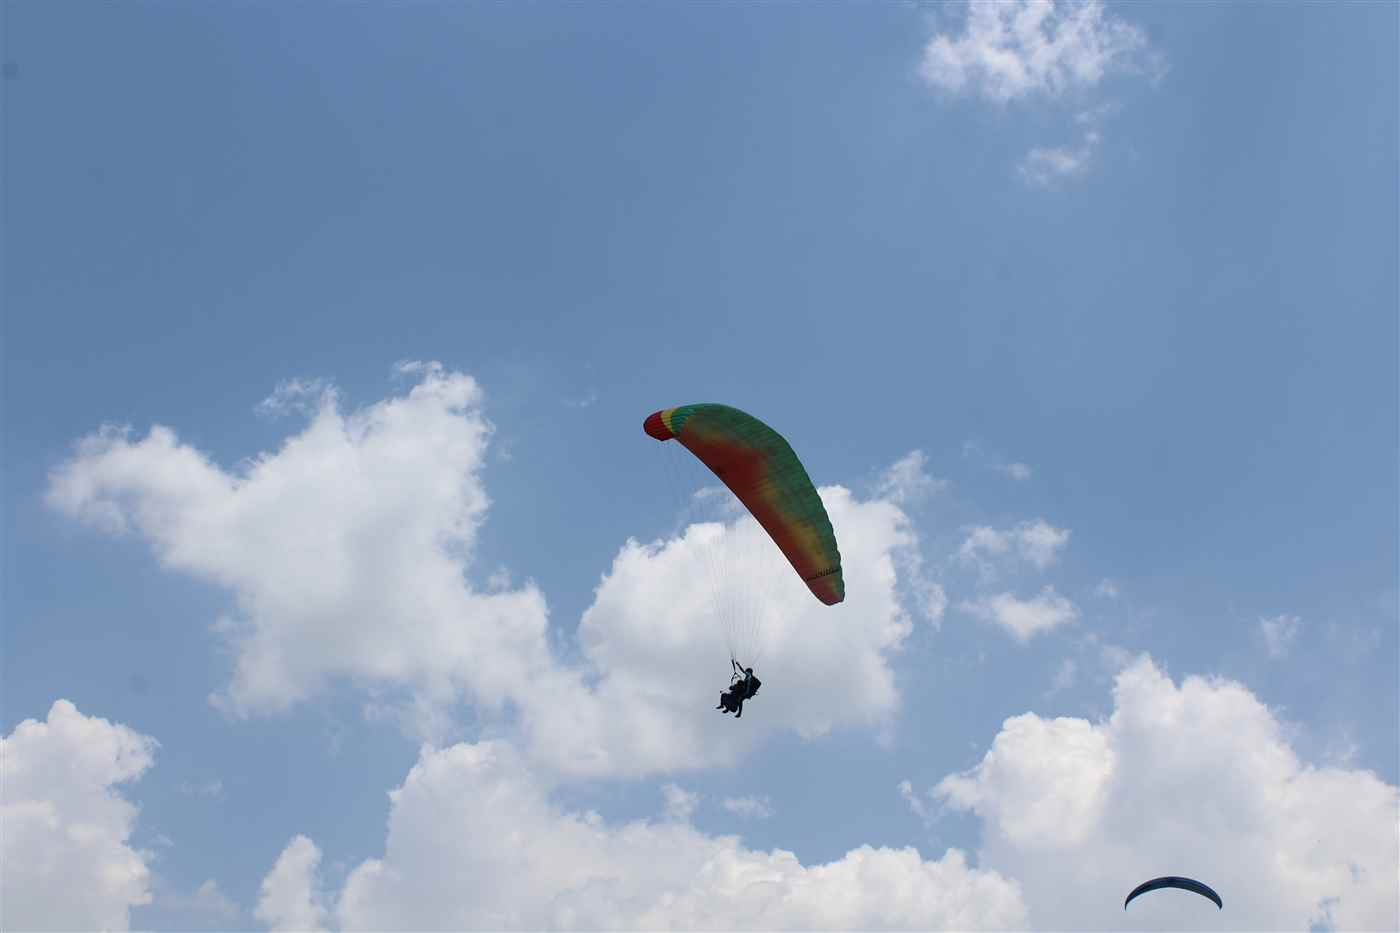 Paragliding + Trekking + Camping @ 3,450/- Only